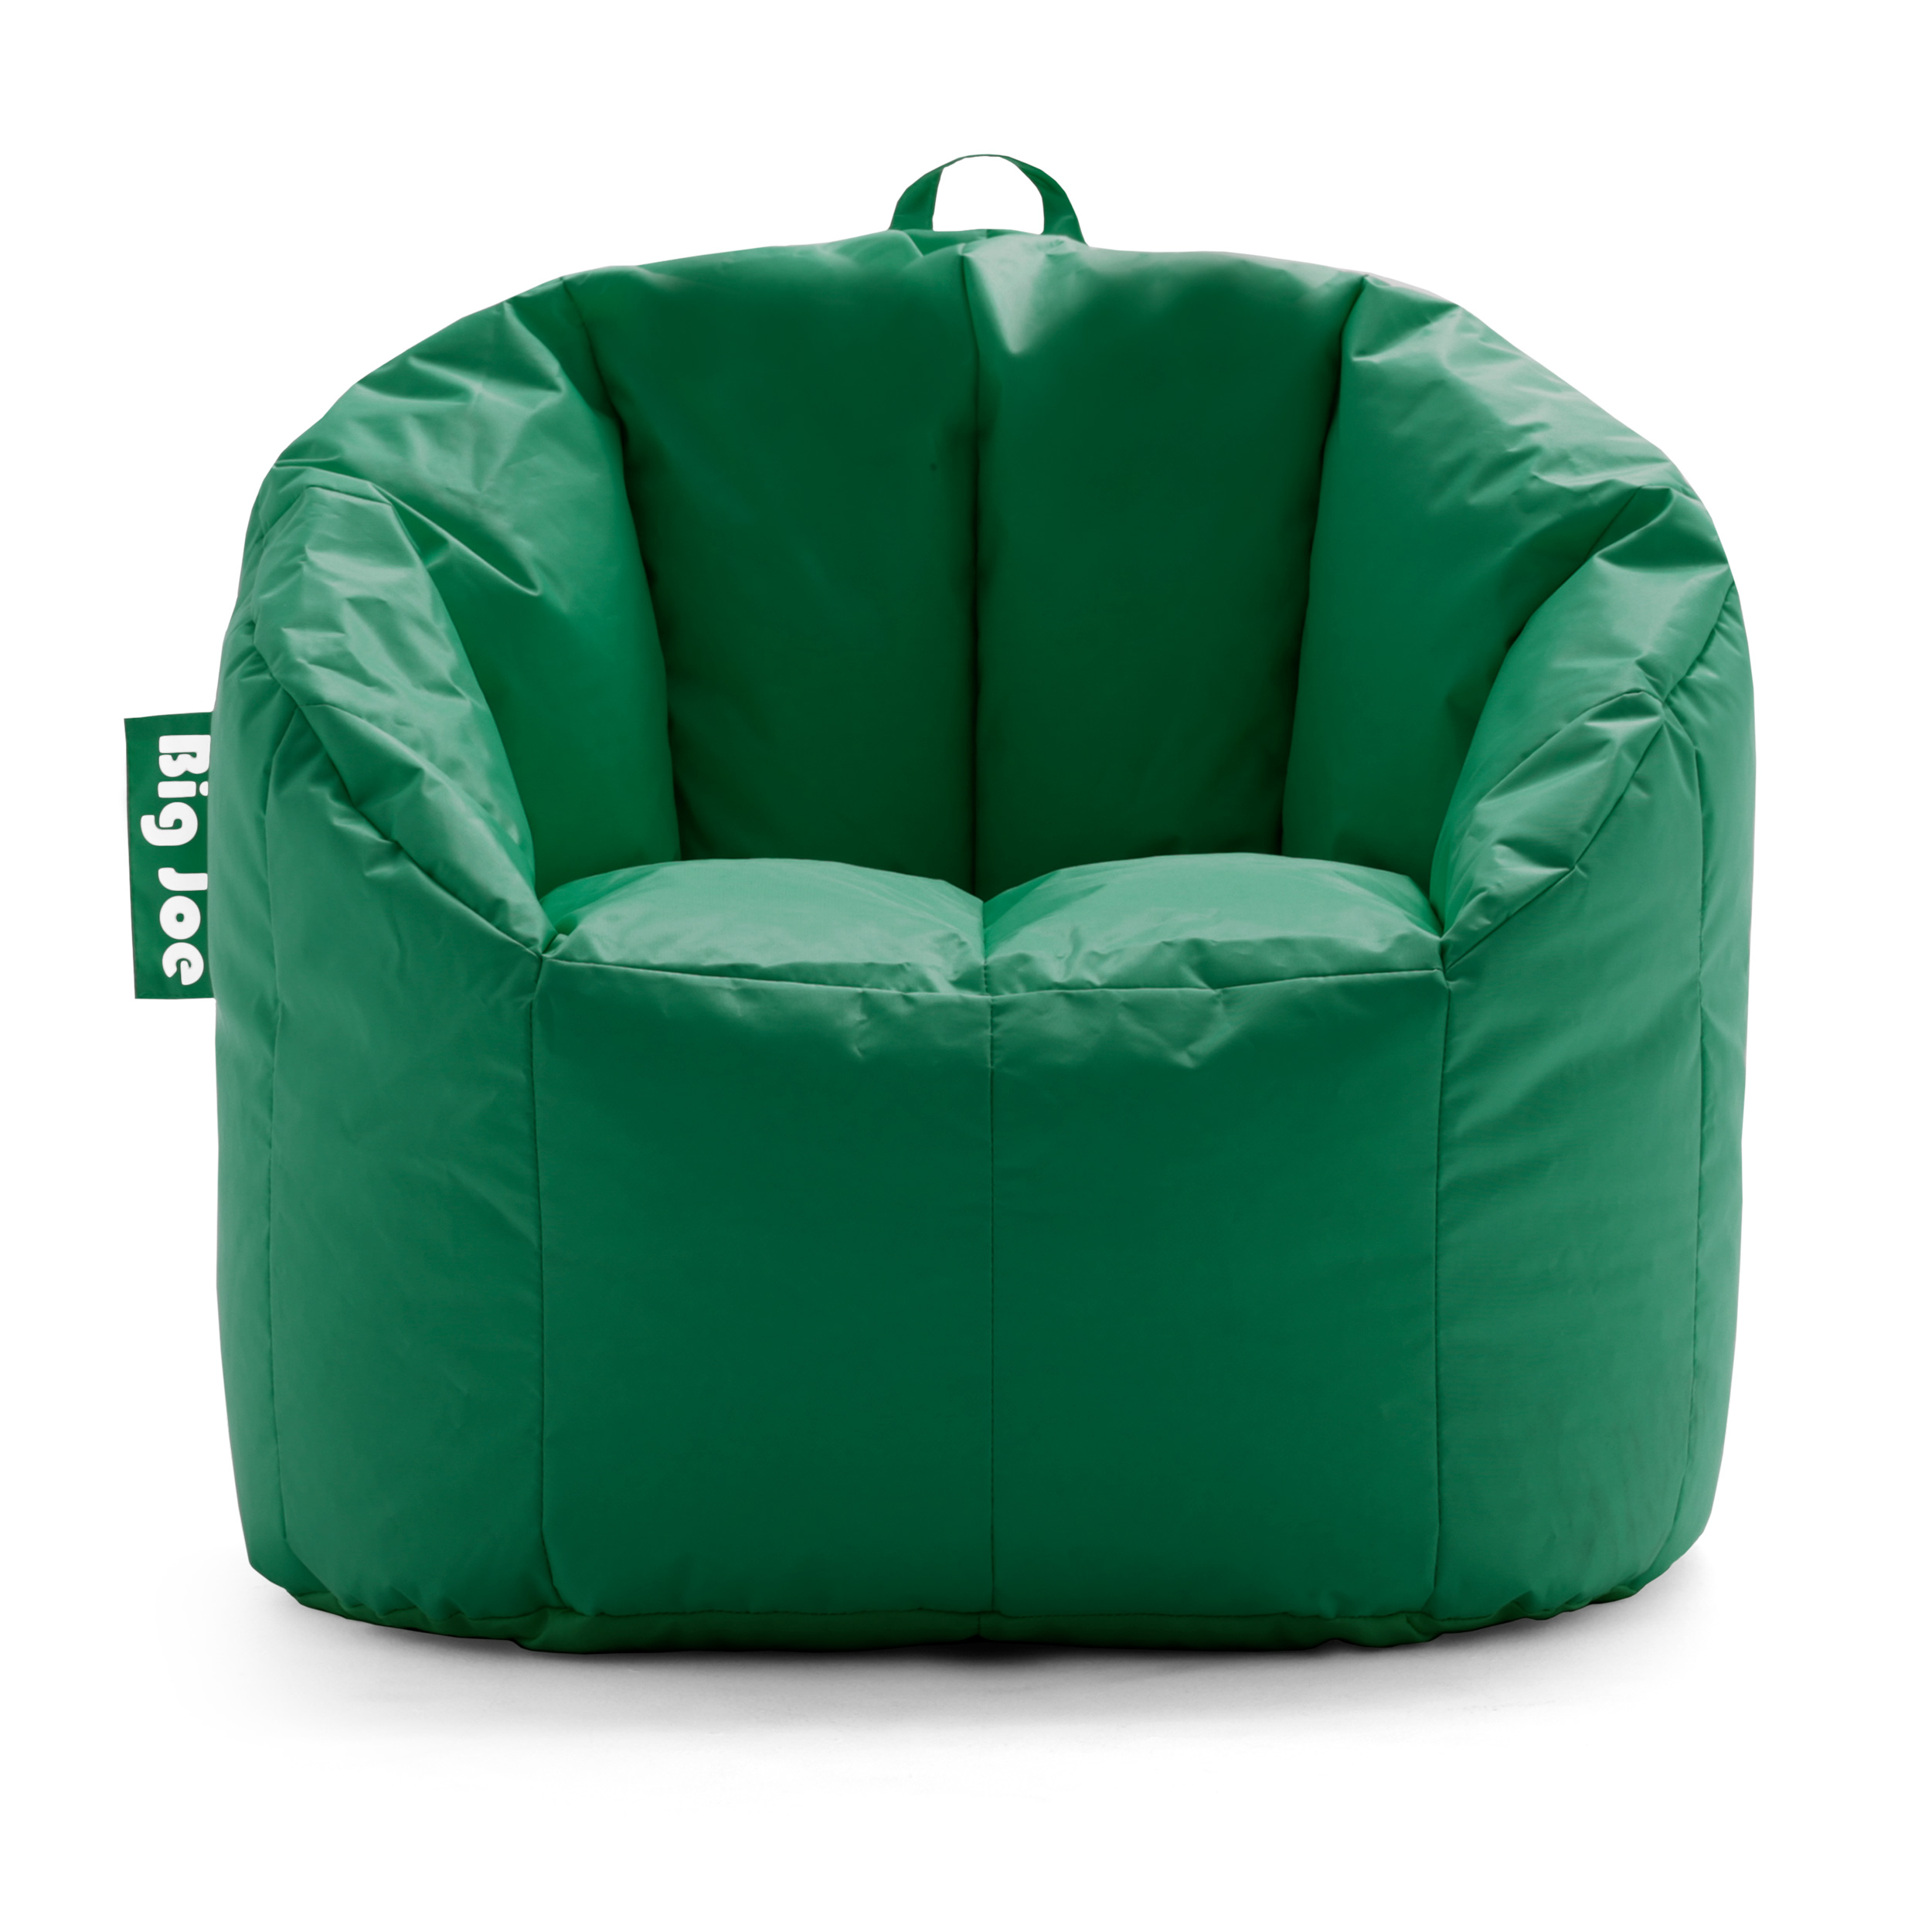 Wondrous Big Joe Milano Bean Bag Chair Multiple Colors 32 X 28 X Ibusinesslaw Wood Chair Design Ideas Ibusinesslaworg